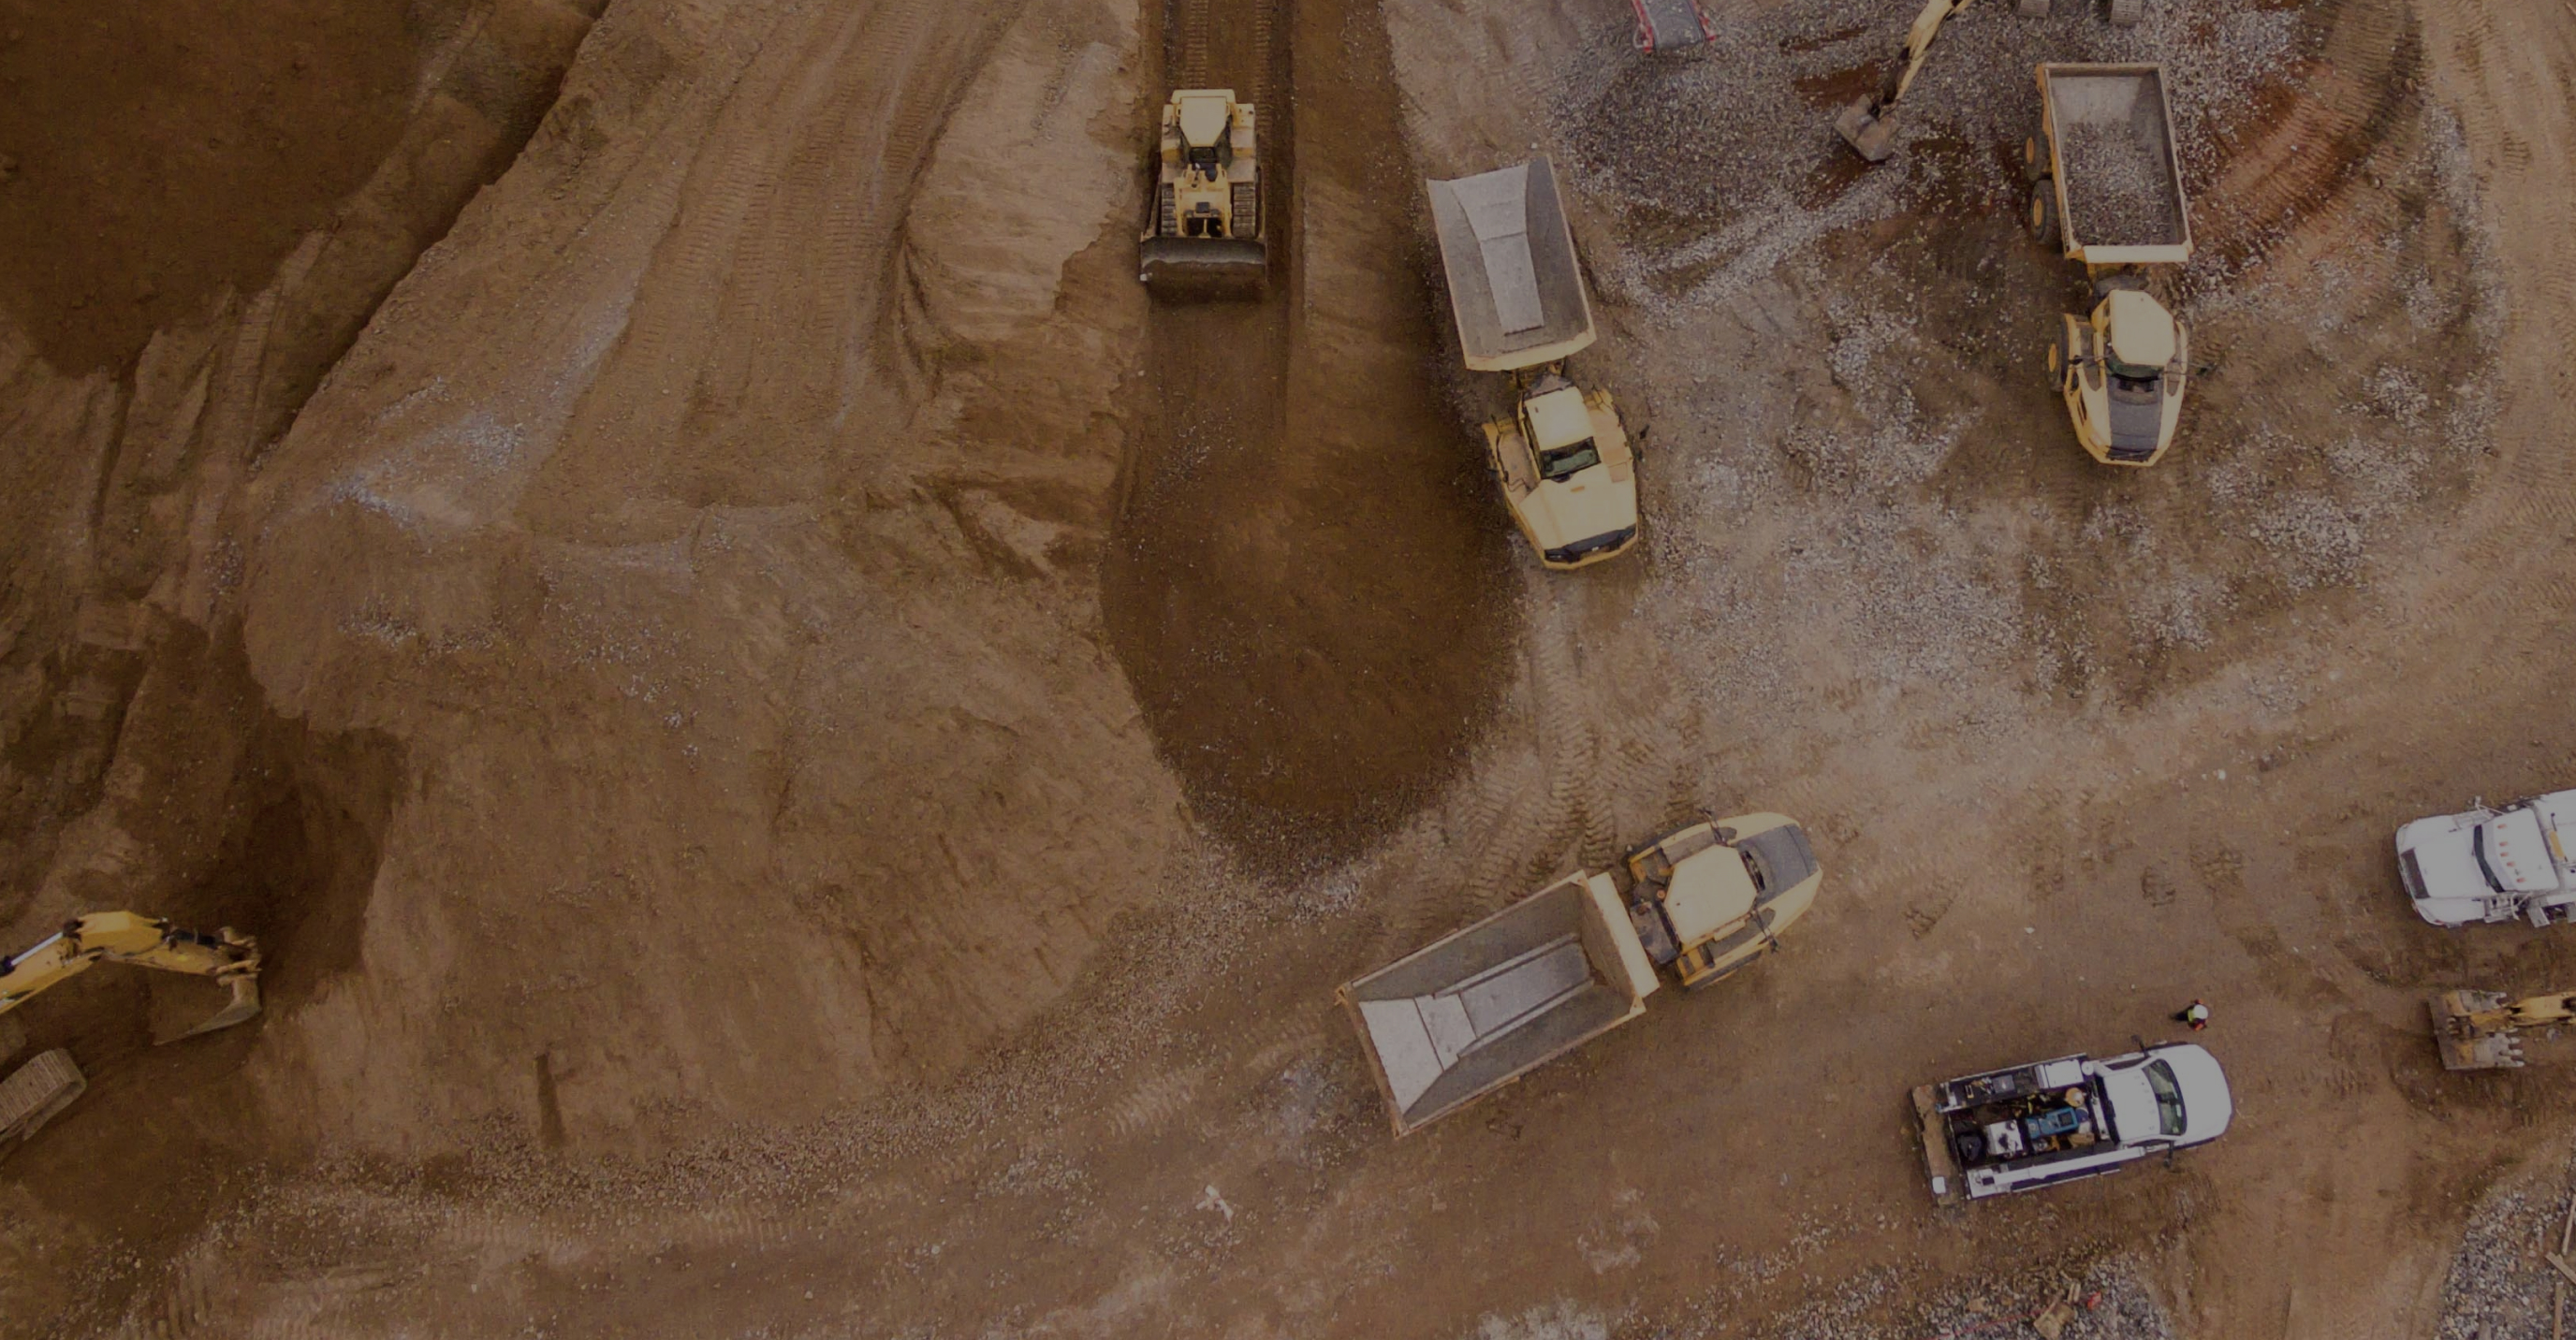 A top down photo of a mining site with mining equipment